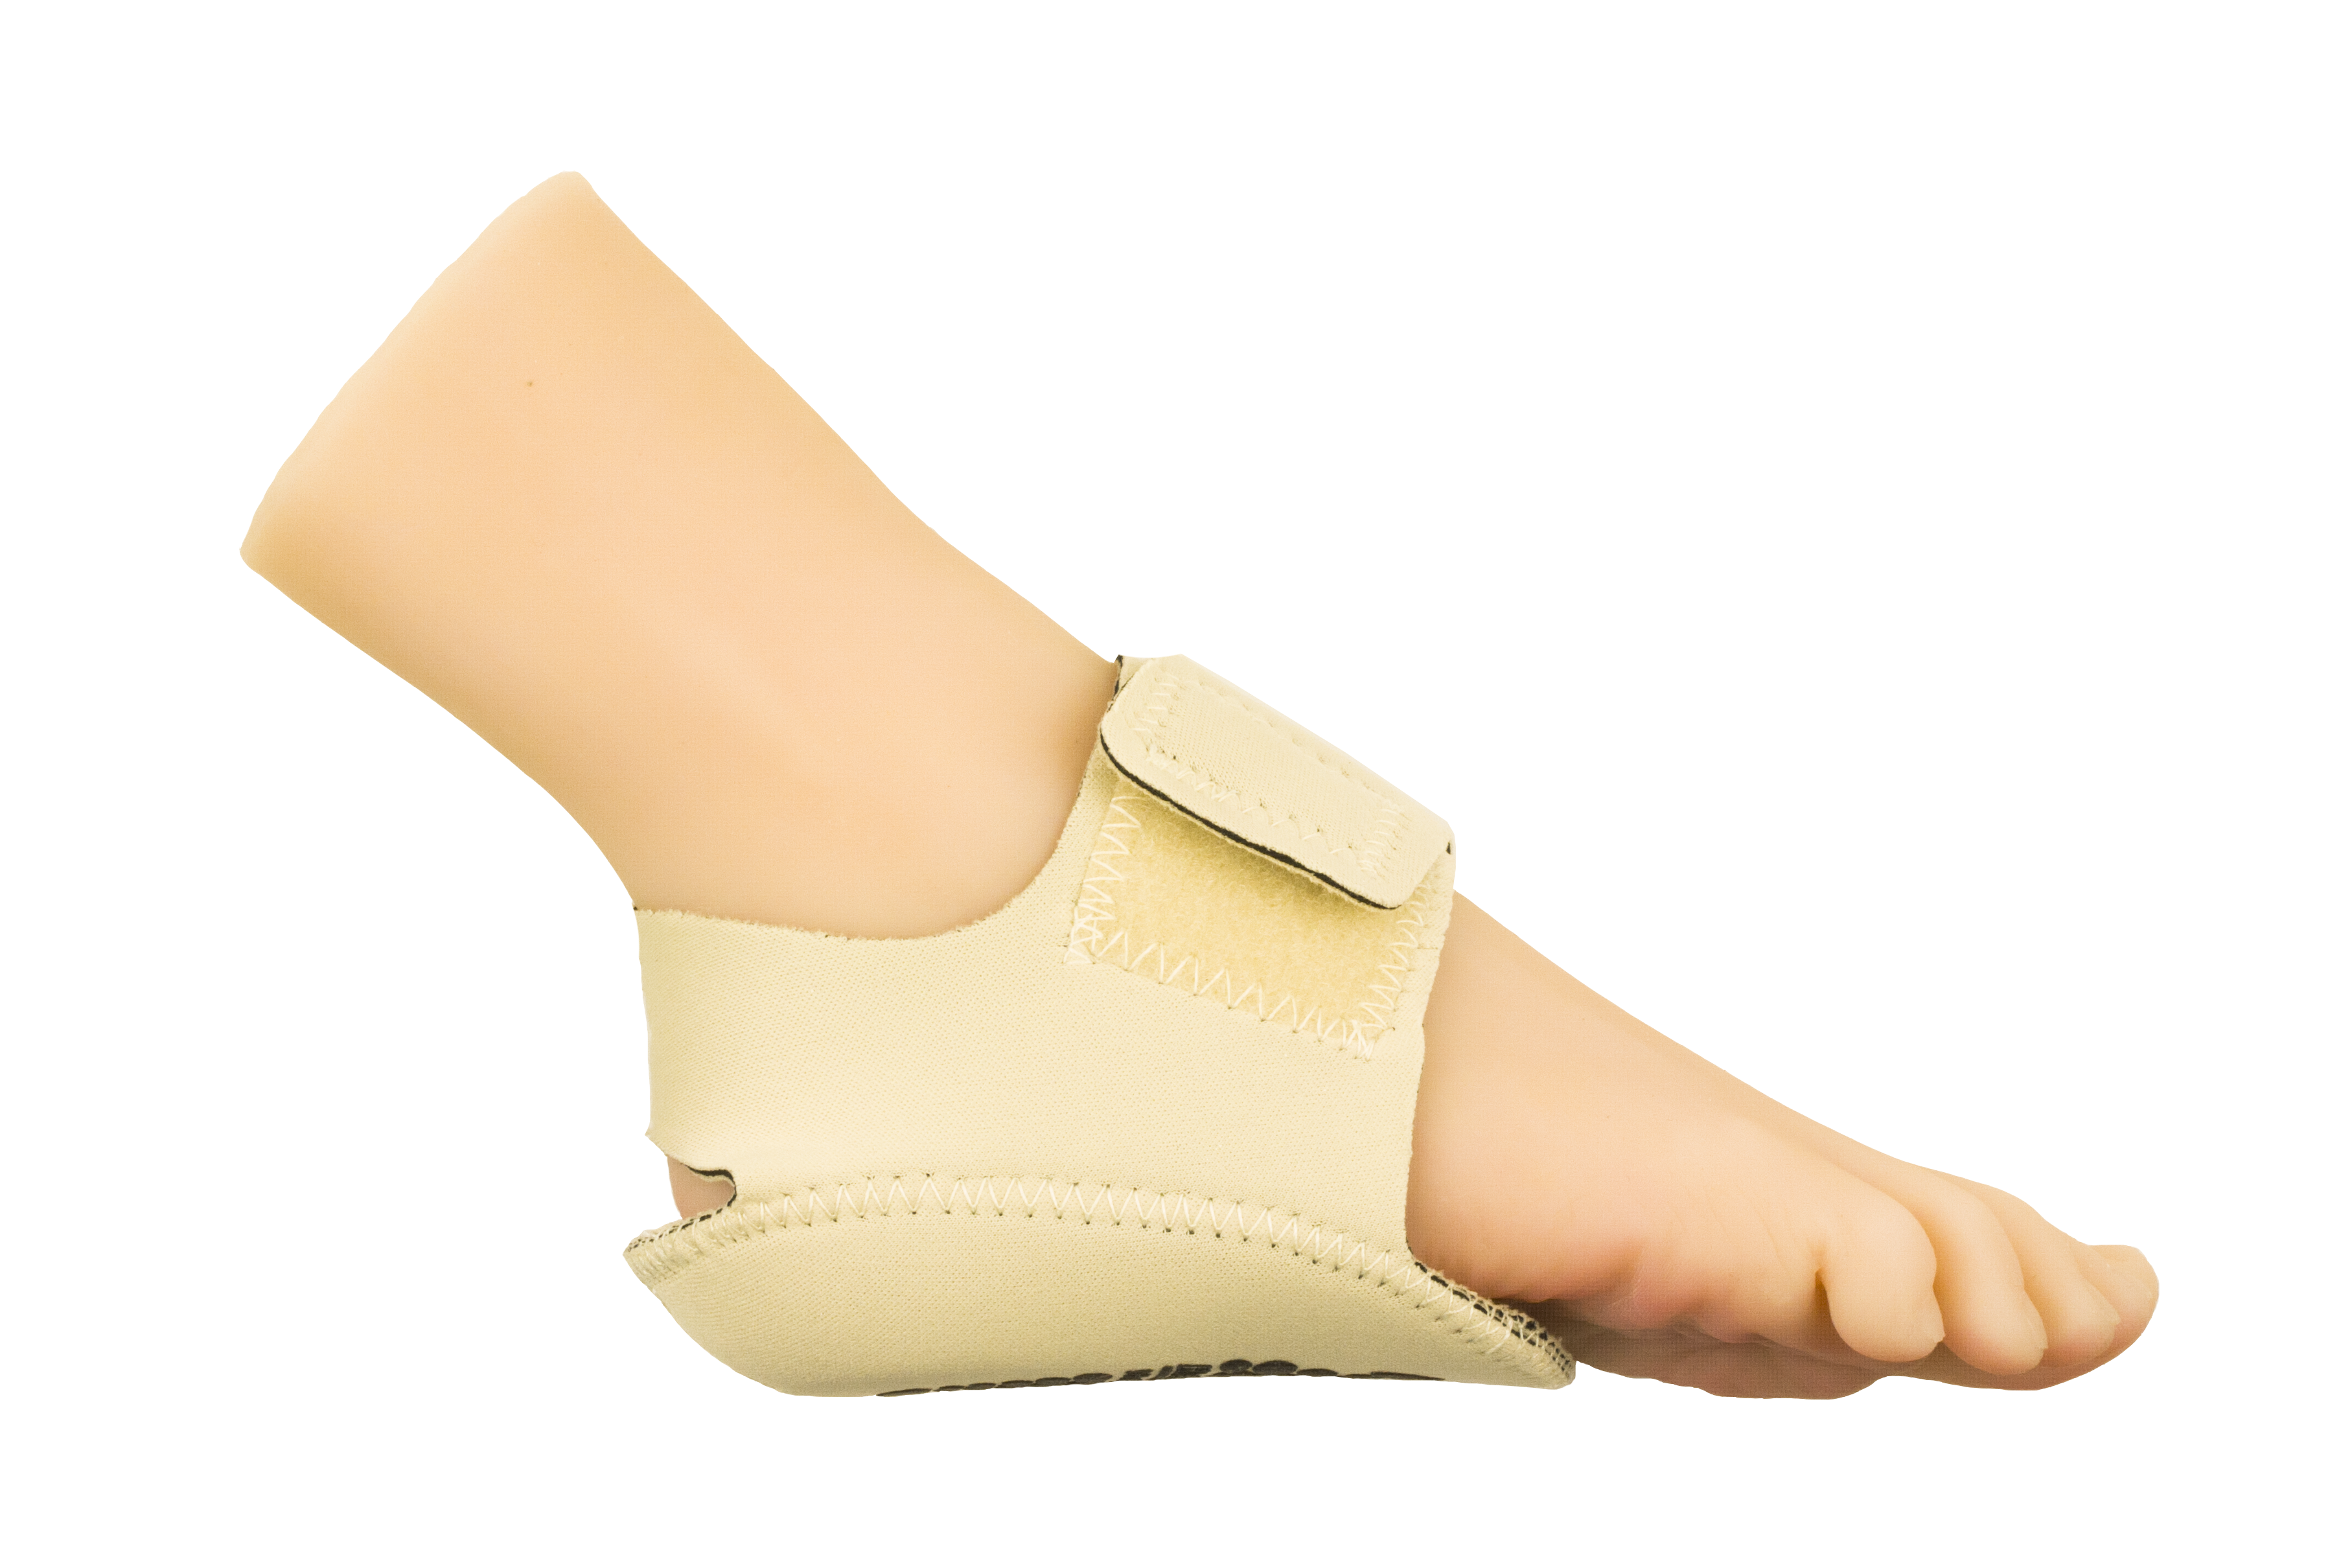 fasciitis tape plantar watch theraband for planter kinesiology youtube planters